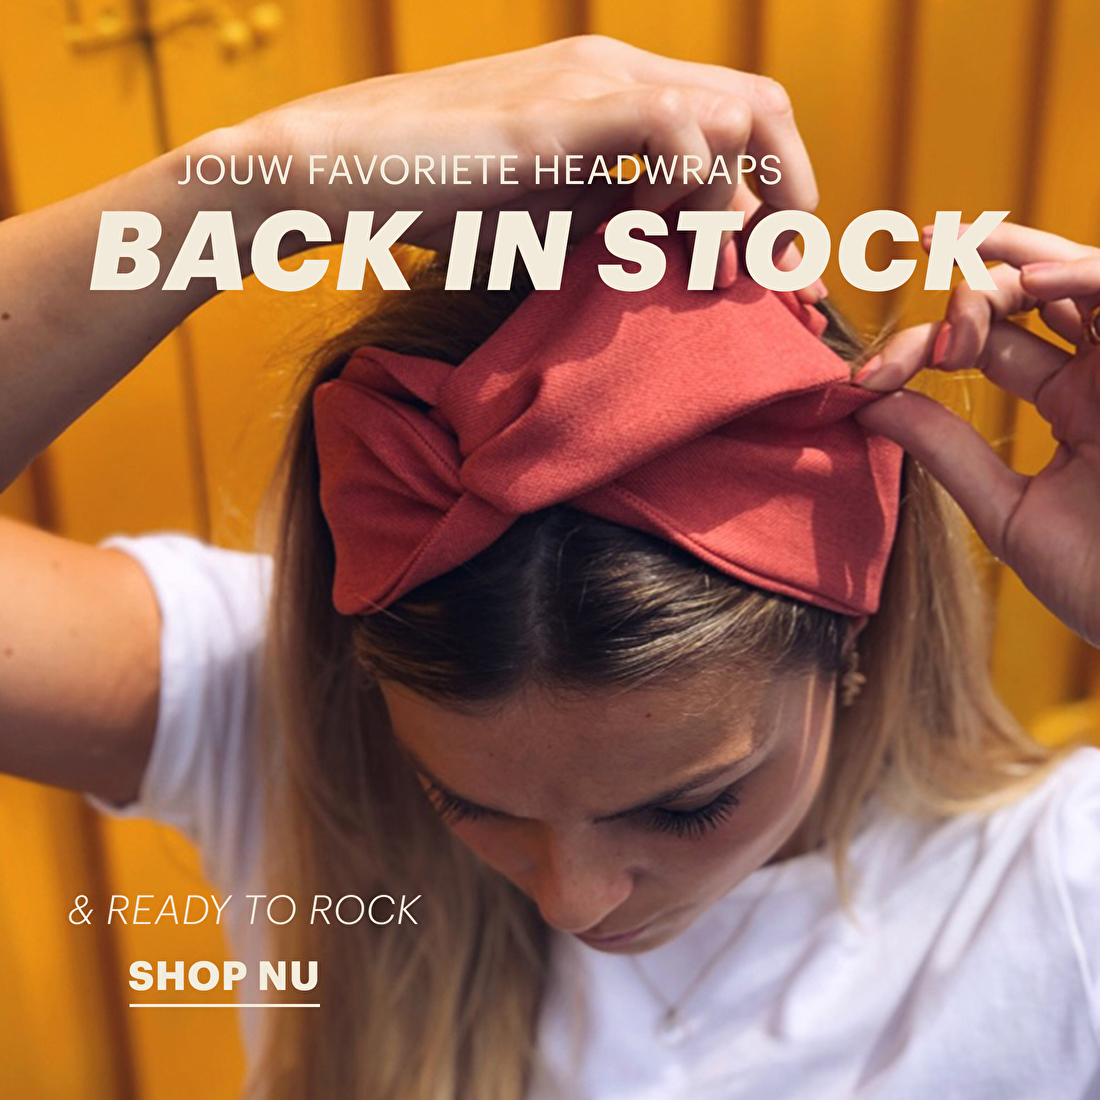 jouw favoriete headwraps zijn weer back in stock. Bestsellers the monkey club.